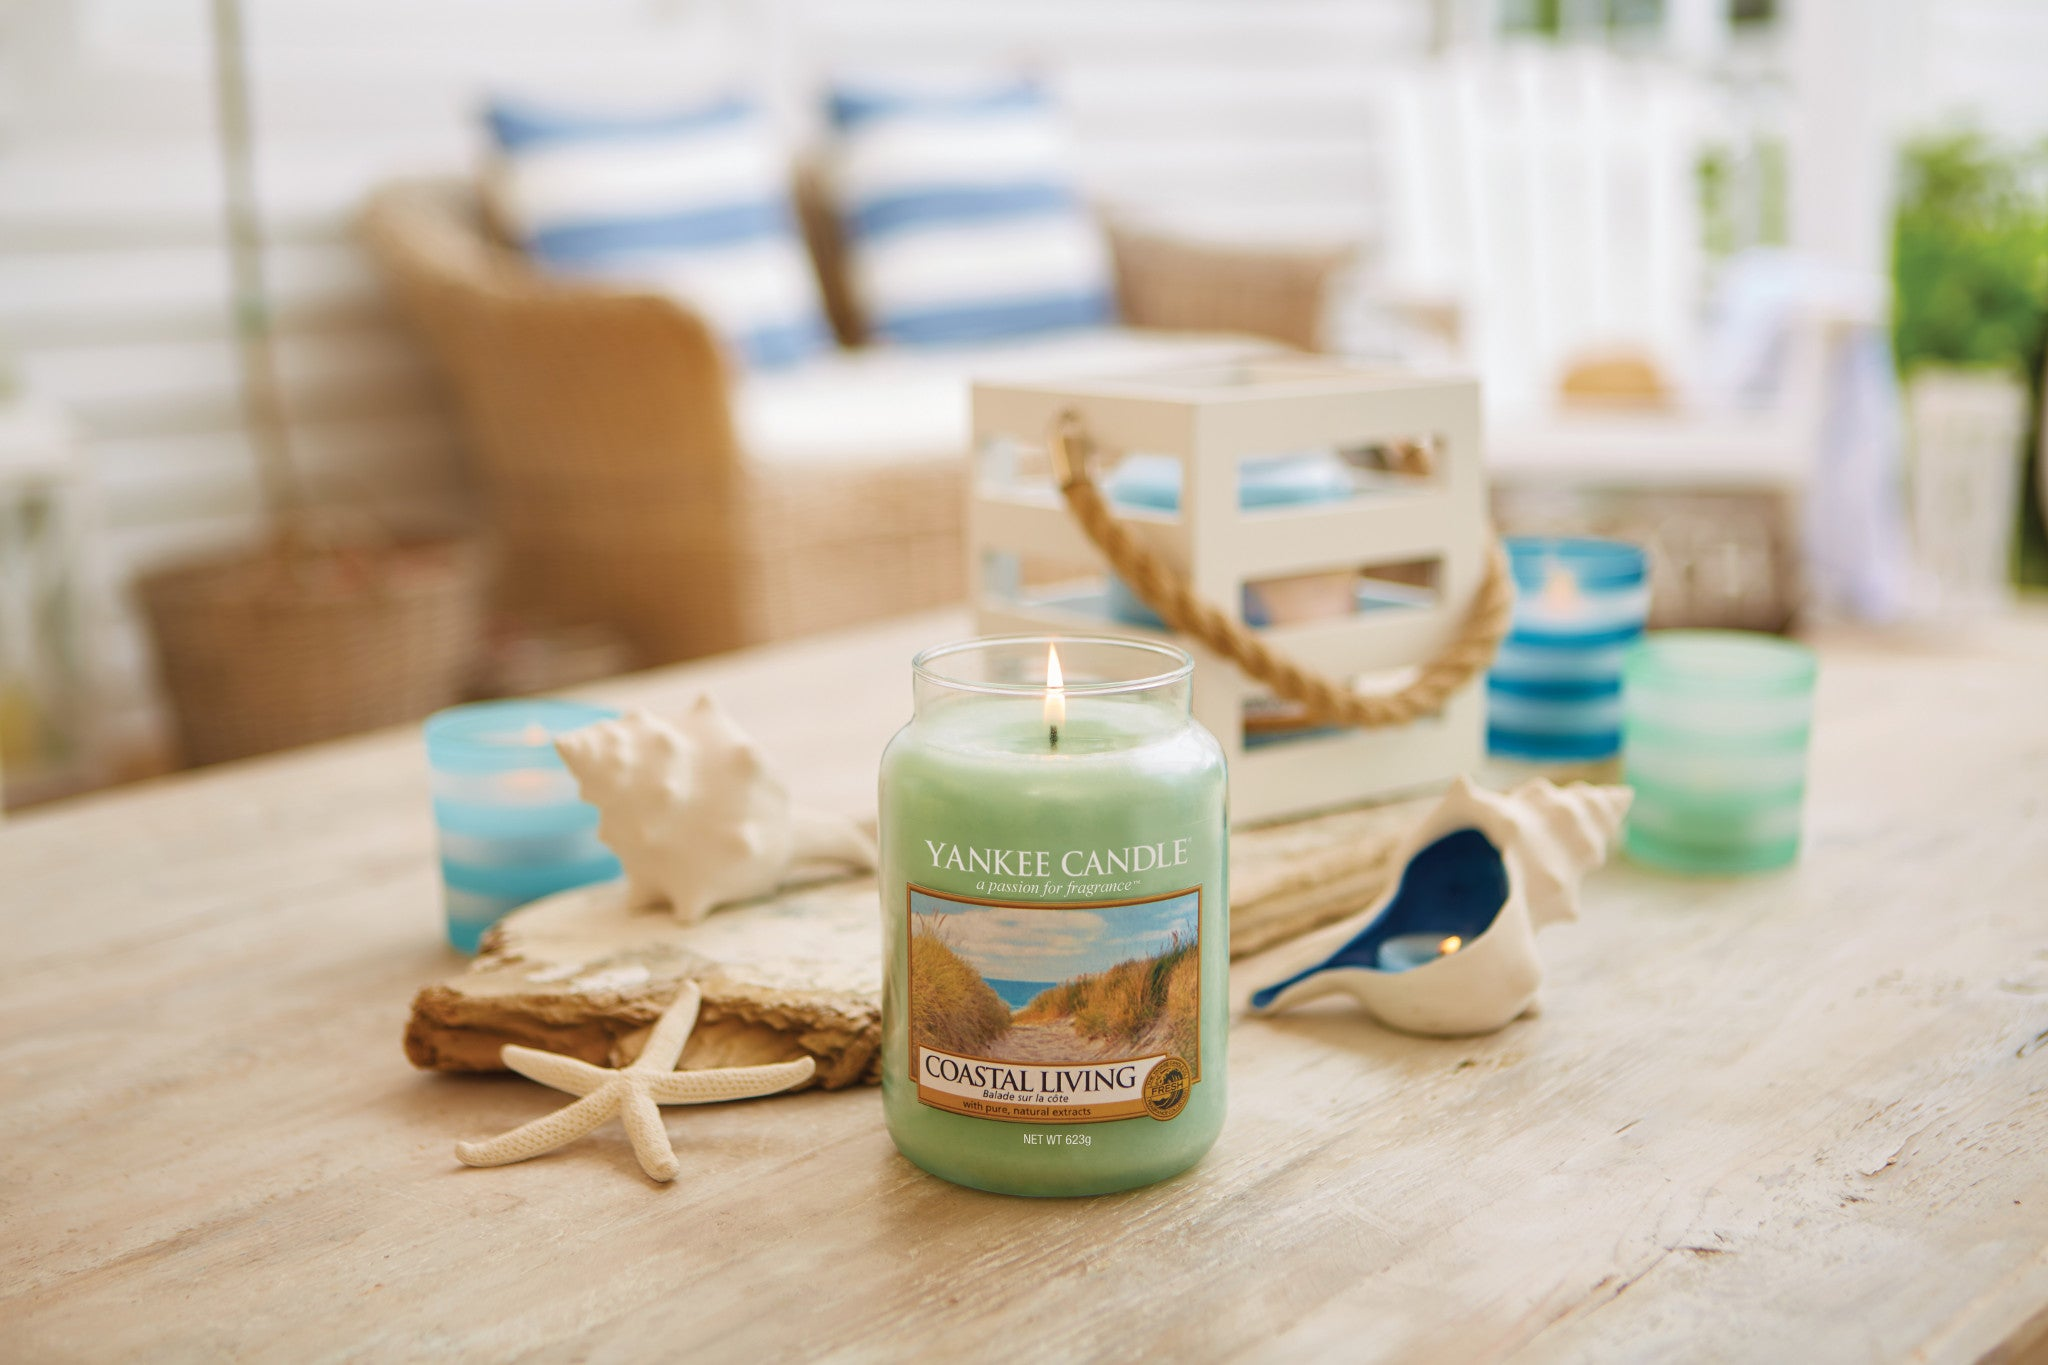 COASTAL LIVING -Yankee Candle- Giara Media